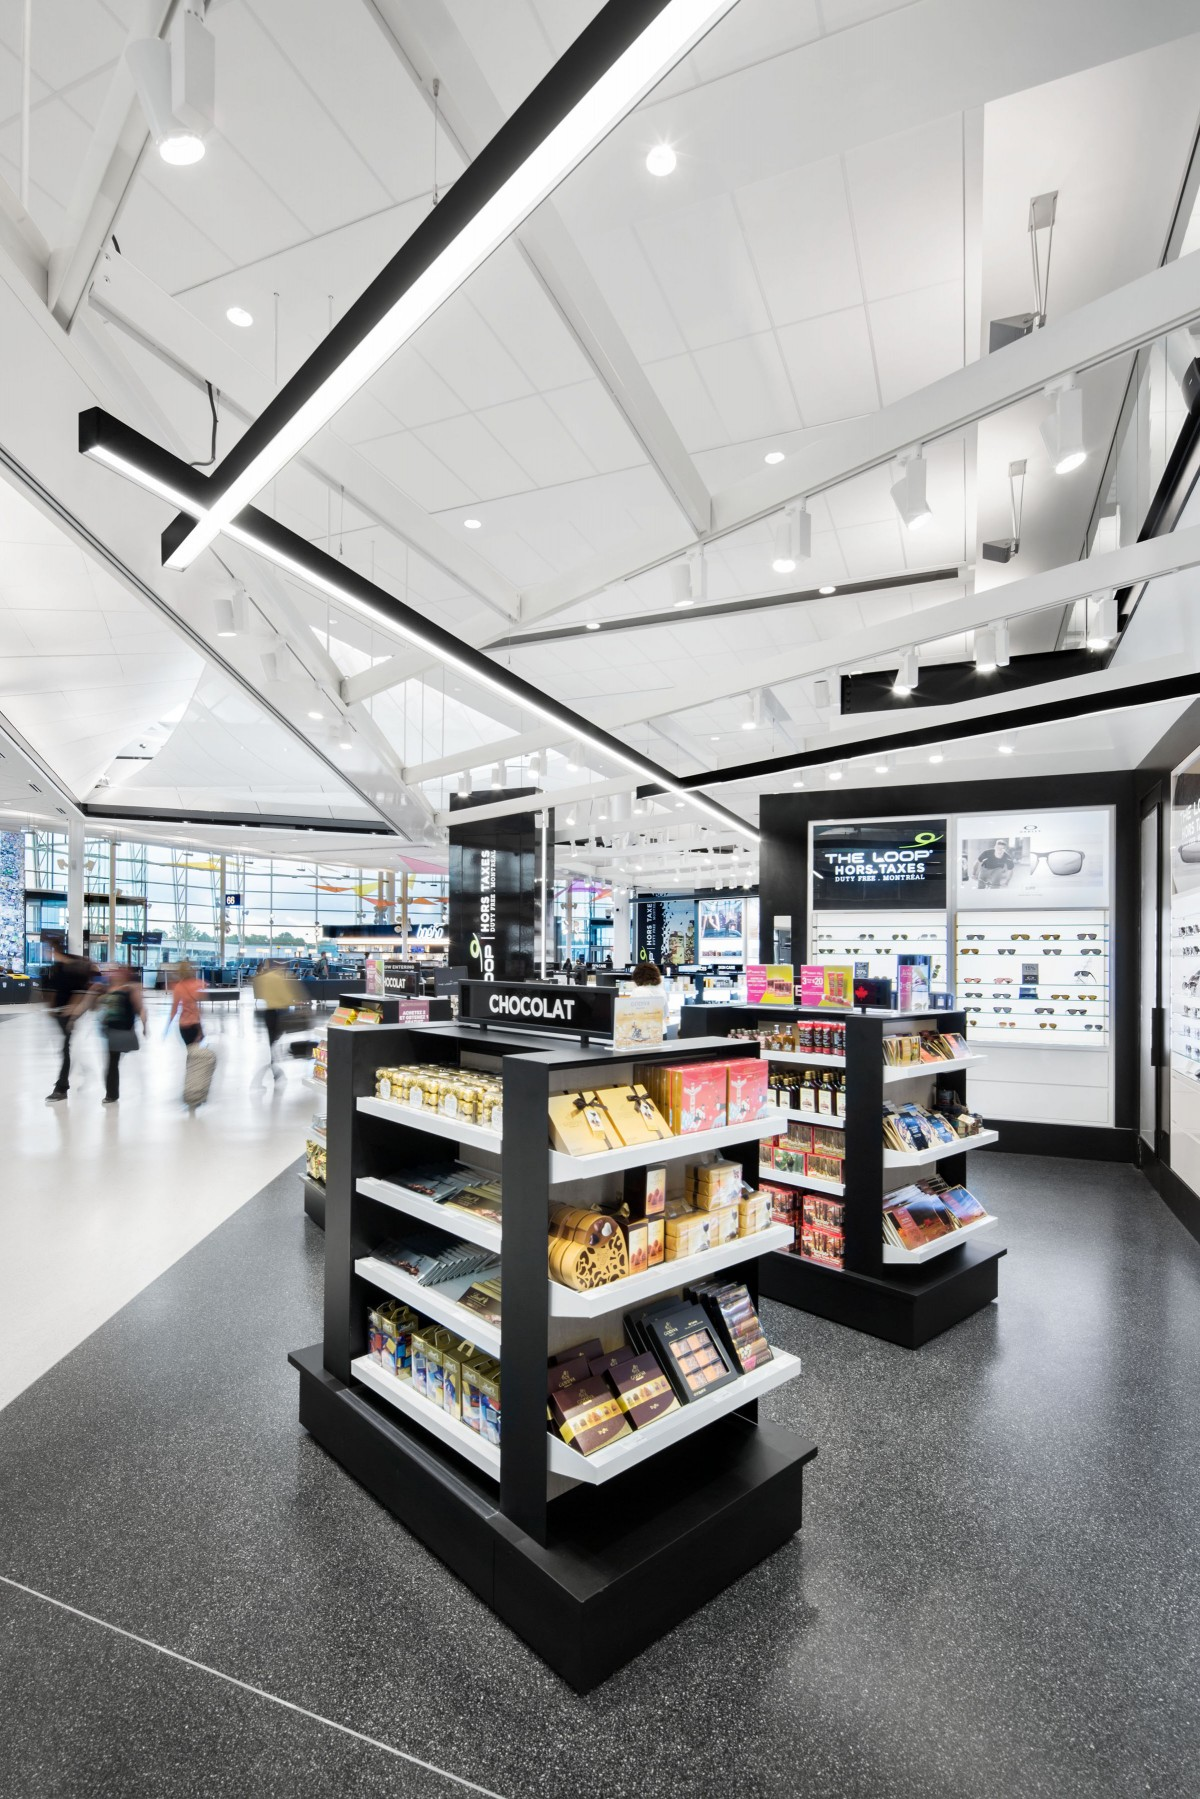 These axis of lights were developed as directional elements to capture the attention of passengers and help to move circulate into the shops.  – Stéphane Brügger